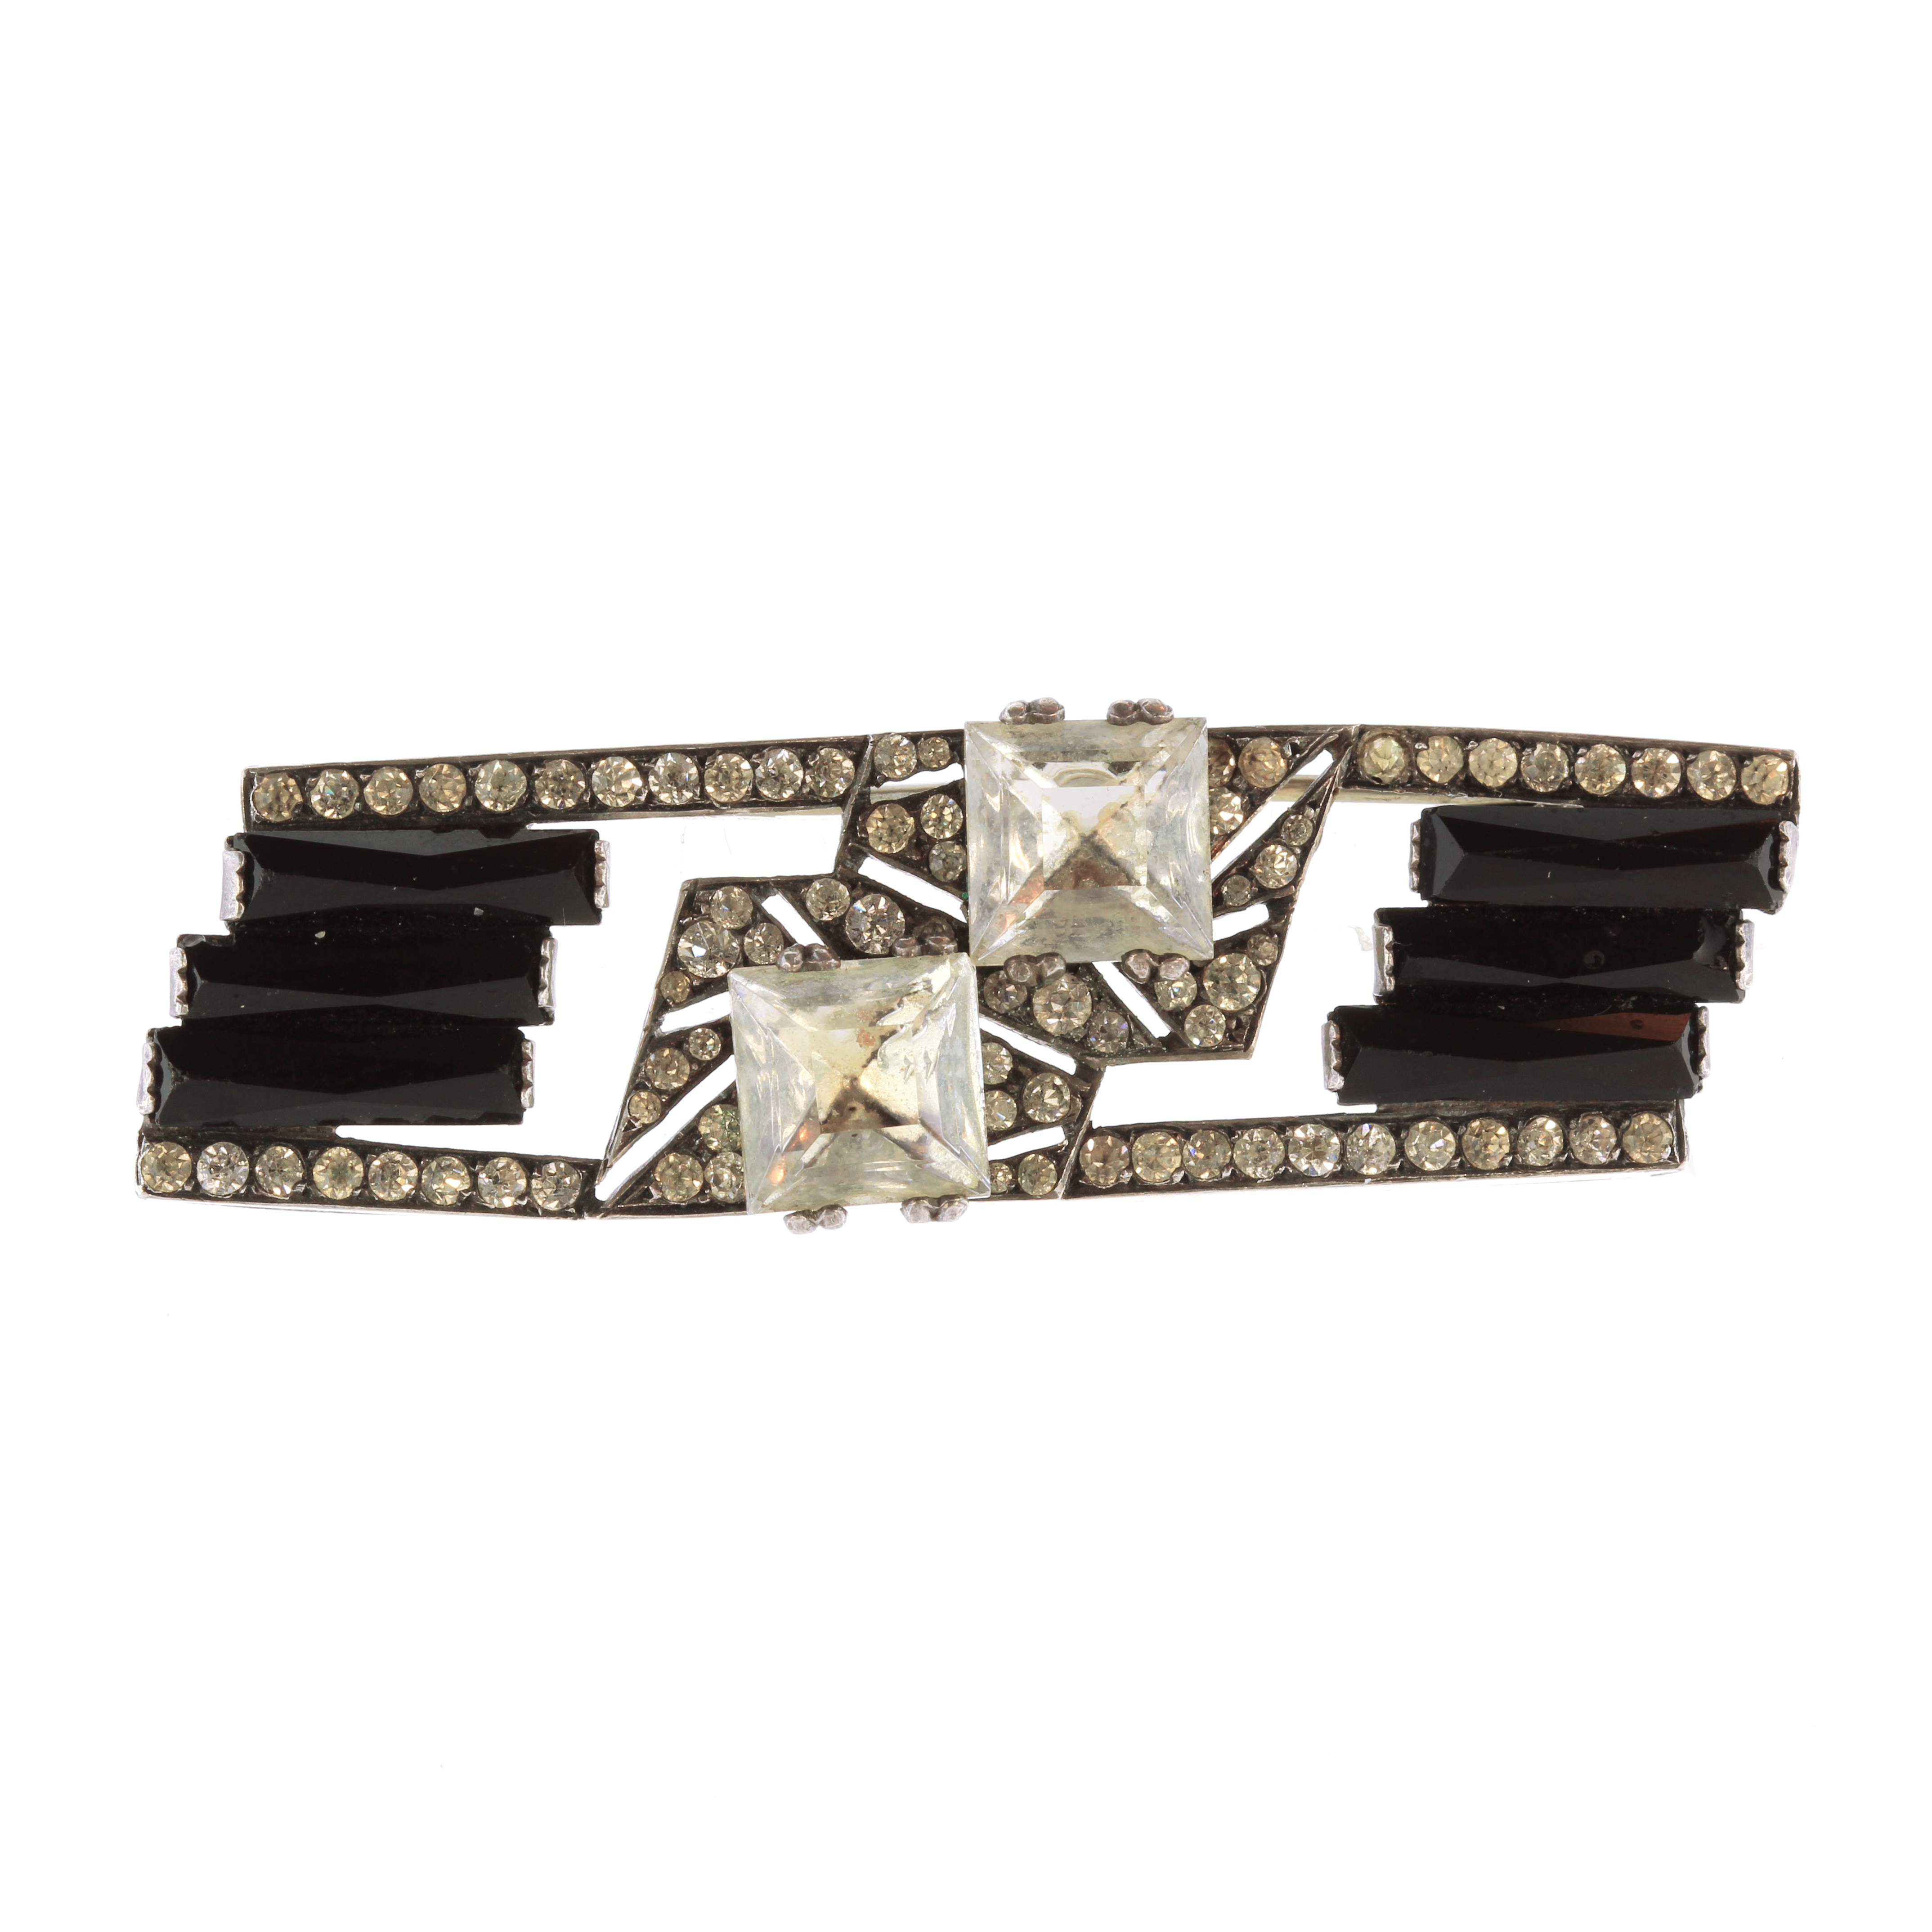 Los 41 - An antique French Art Deco onyx and paste brooch in silver of rectangular form set with faceted